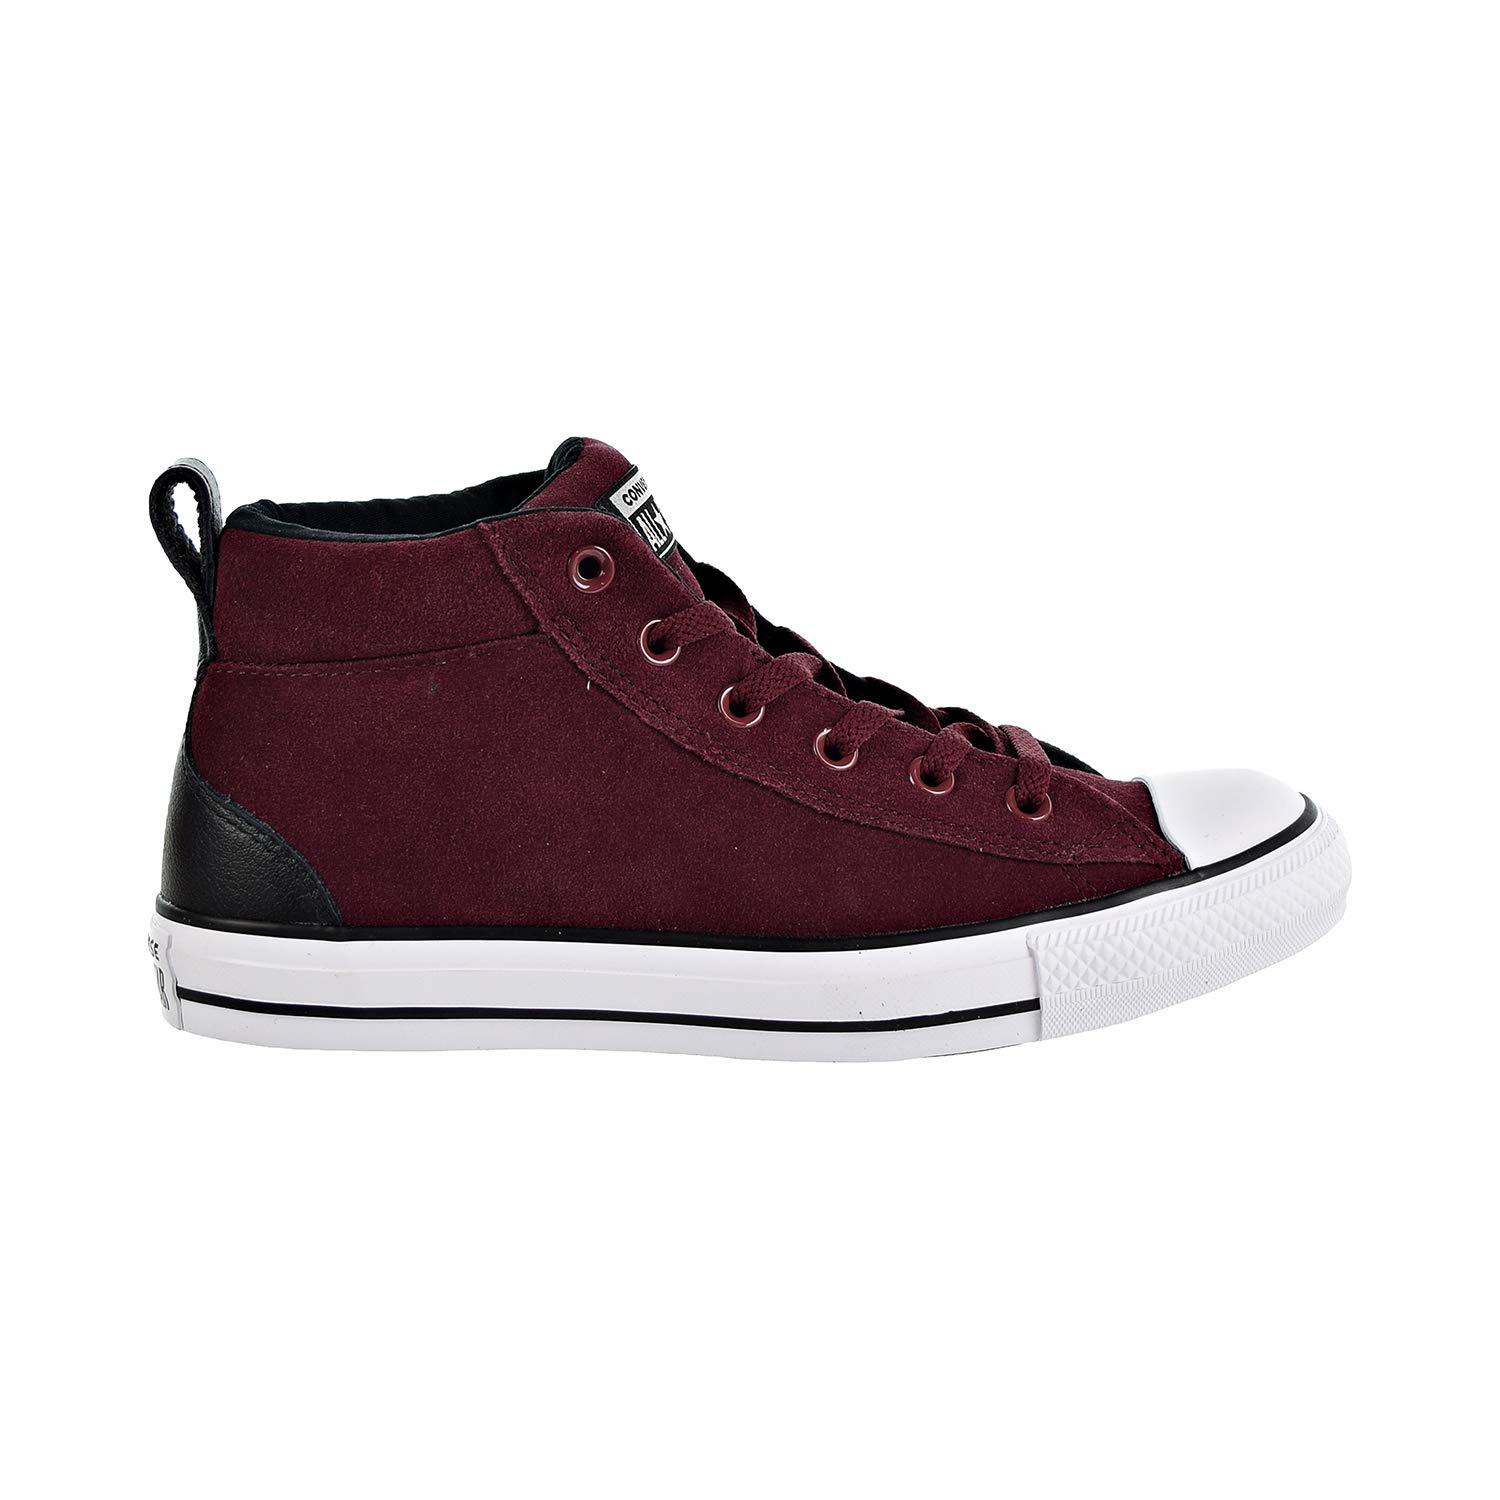 18219eb6640 Galleon - Converse Chuck Taylor All Star Street Suede MID Sneaker Dark  Burgundy Black White 7.5 M US